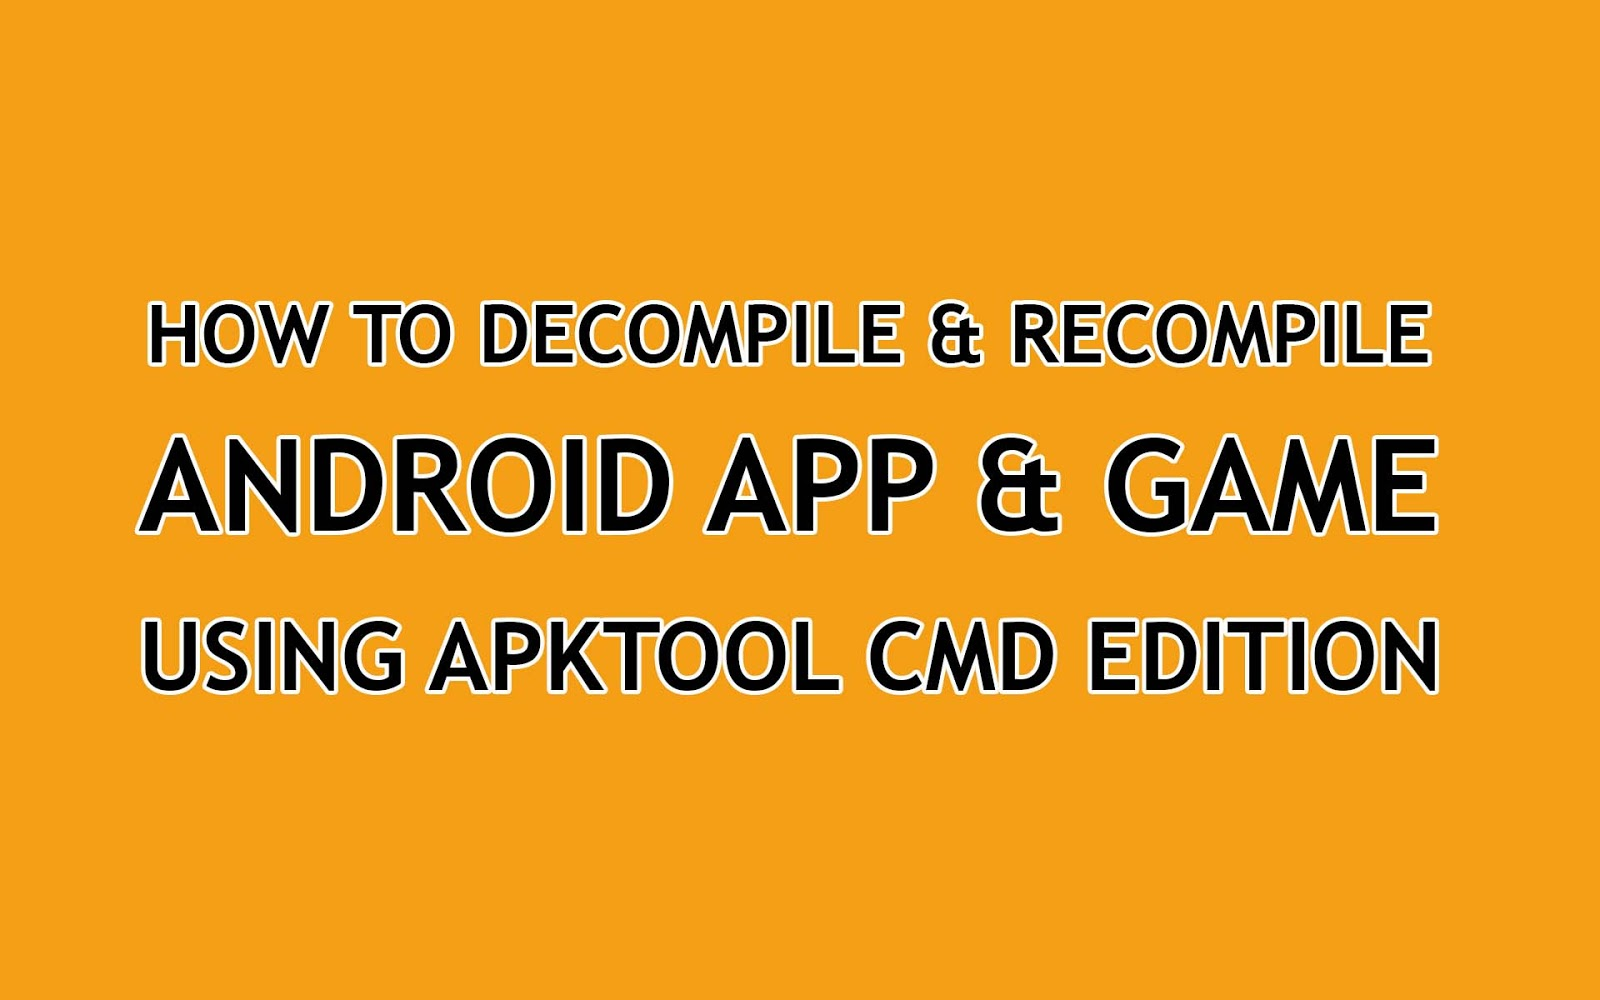 HOW TO DECOMPILE & RECOMPILE ANDROID APP & GAME USING APKTOOL CMD